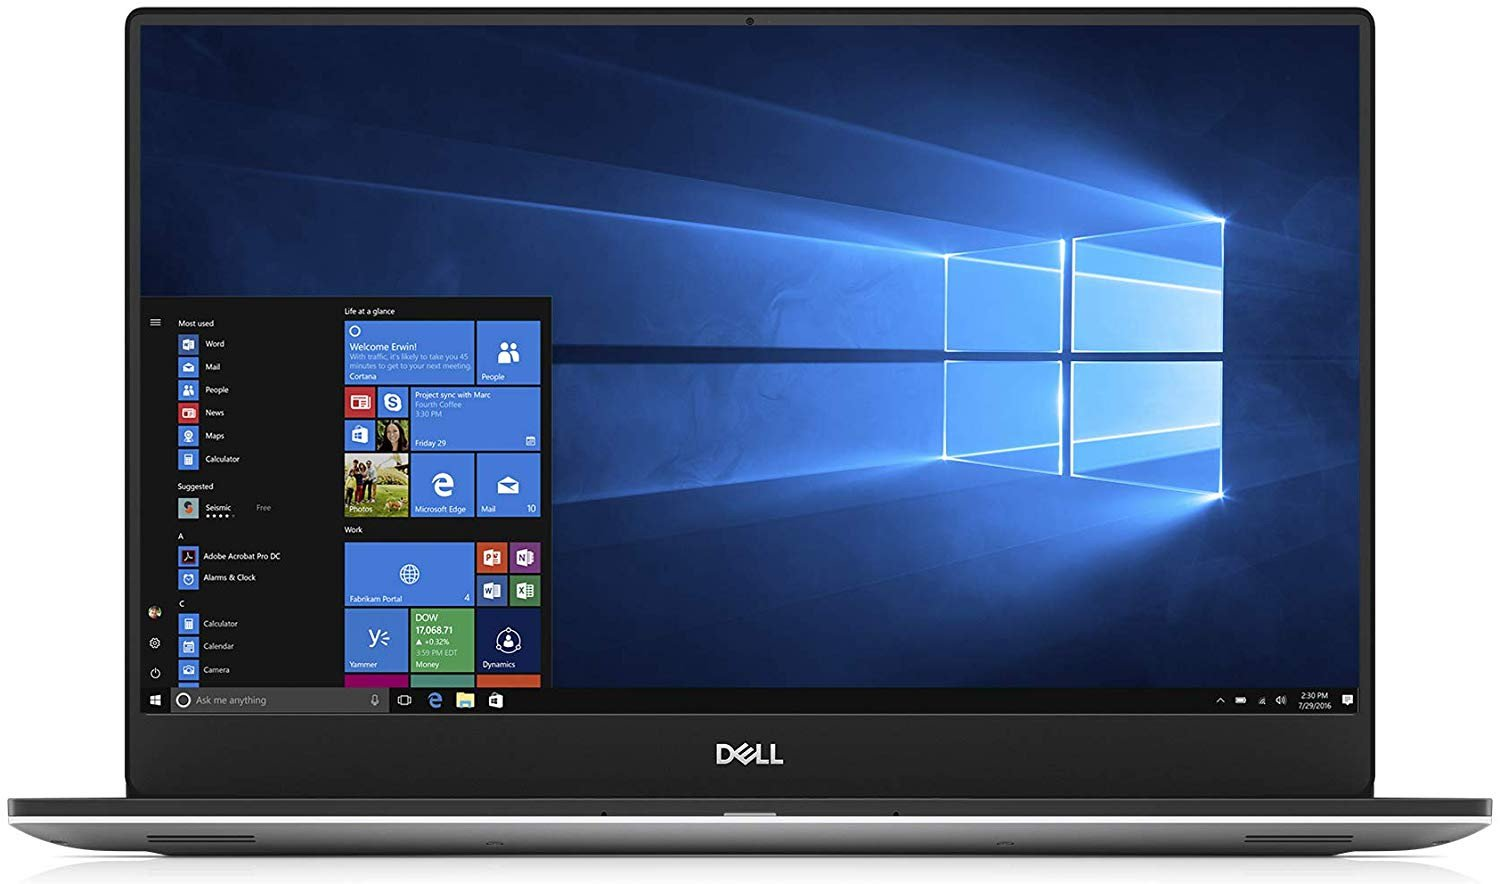 What is Dell XPS 15 7590 with 4K display battery life like?